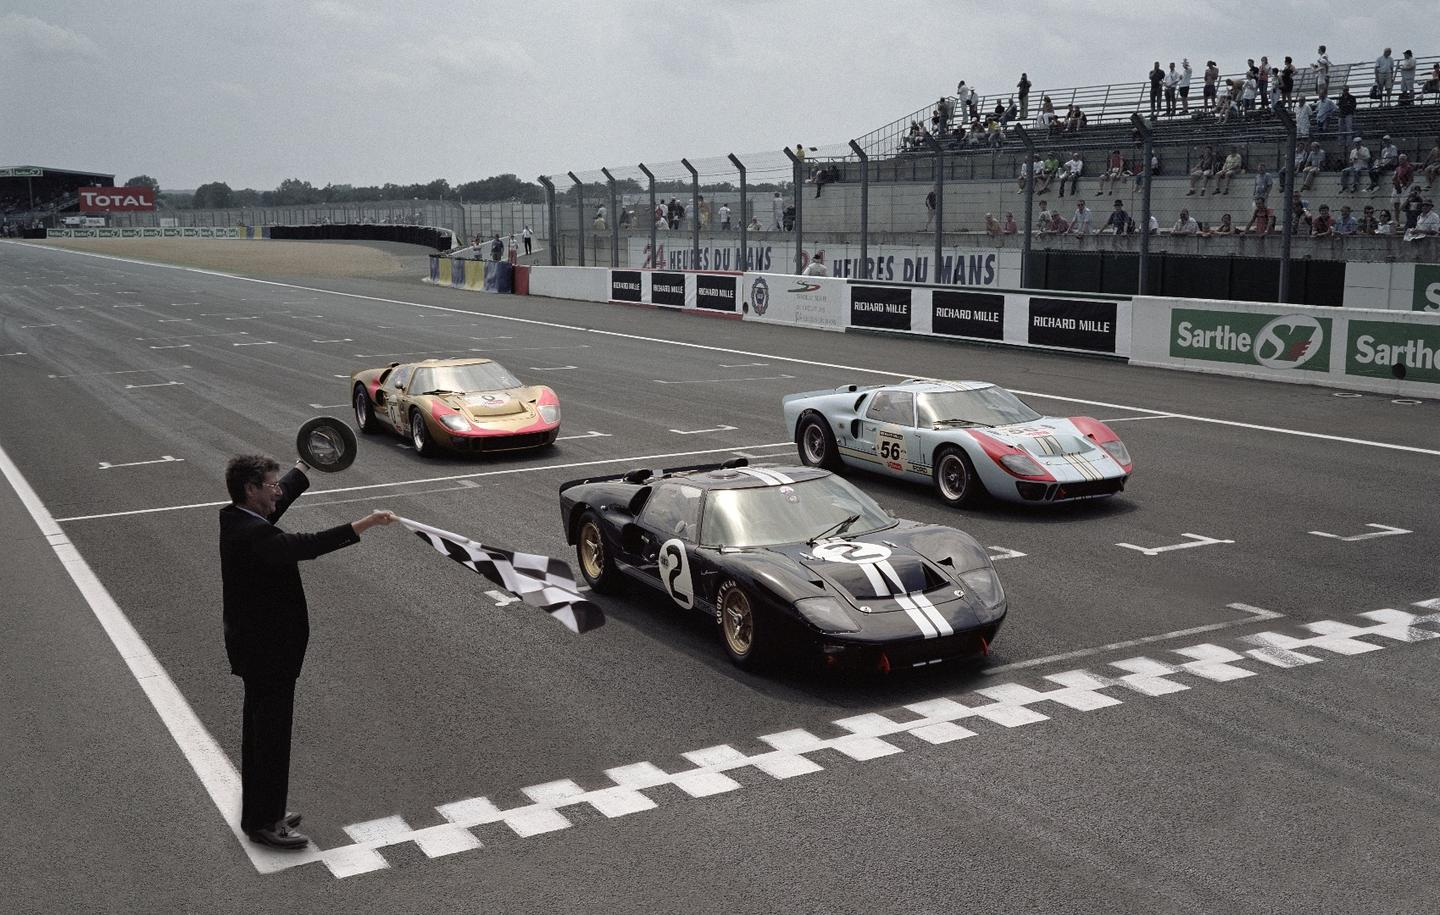 Ford recreates its 1966 Le Mans 1-2-3 finish